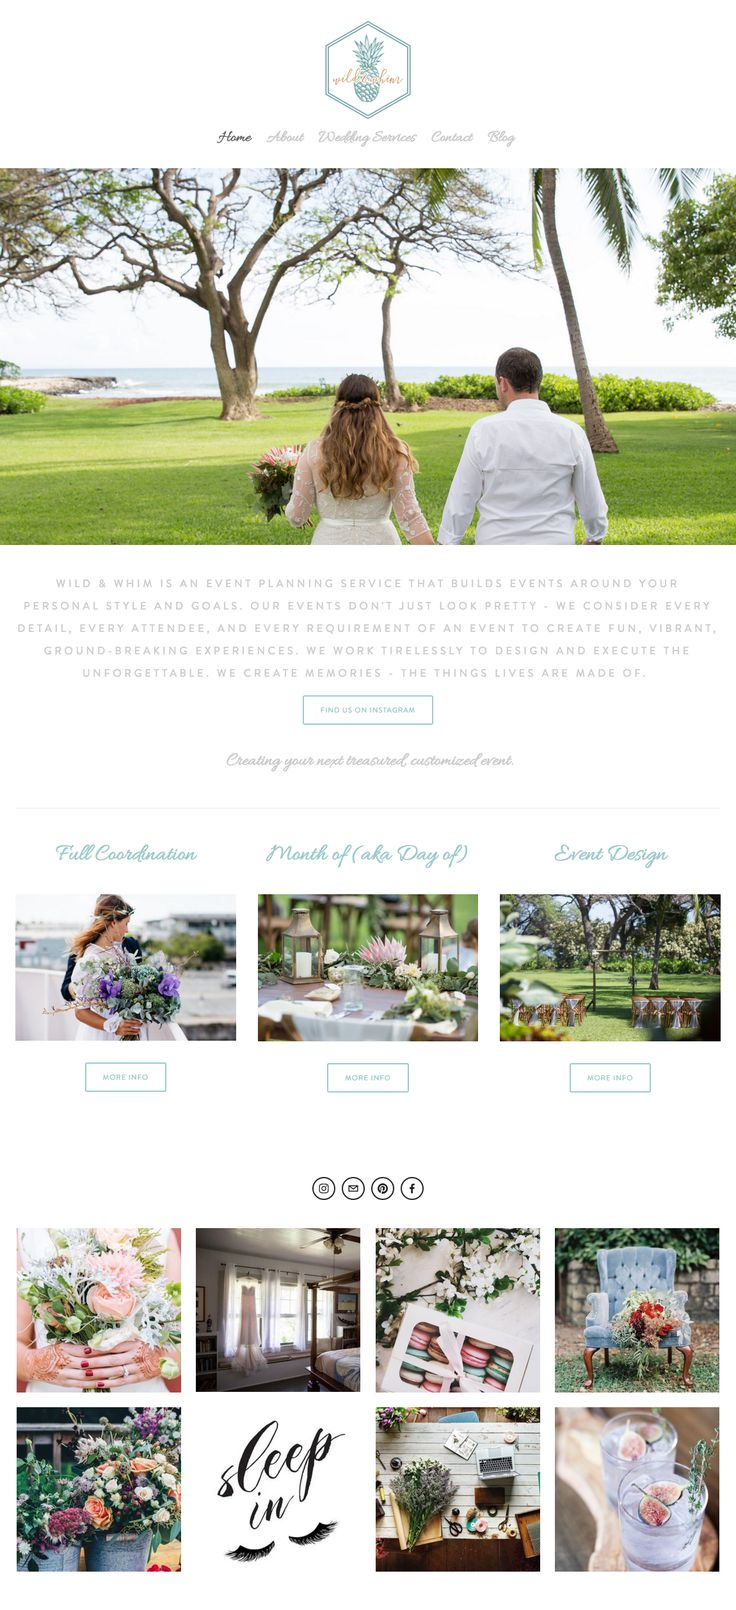 Website makeover I did for Wild & Whim. Wild & Whim is a small wedding planning business based in Tauranga, NZ. They had an existing site but needed an overhaul on their look and feel. I wanted to create a whimsical, romantic feel with soft colours reflecting their whimsical style. Design by Cheyney is a graphic design business based in Auckland New Zealand. DBC offers a range of services including web, logo, packaging, print design and more.